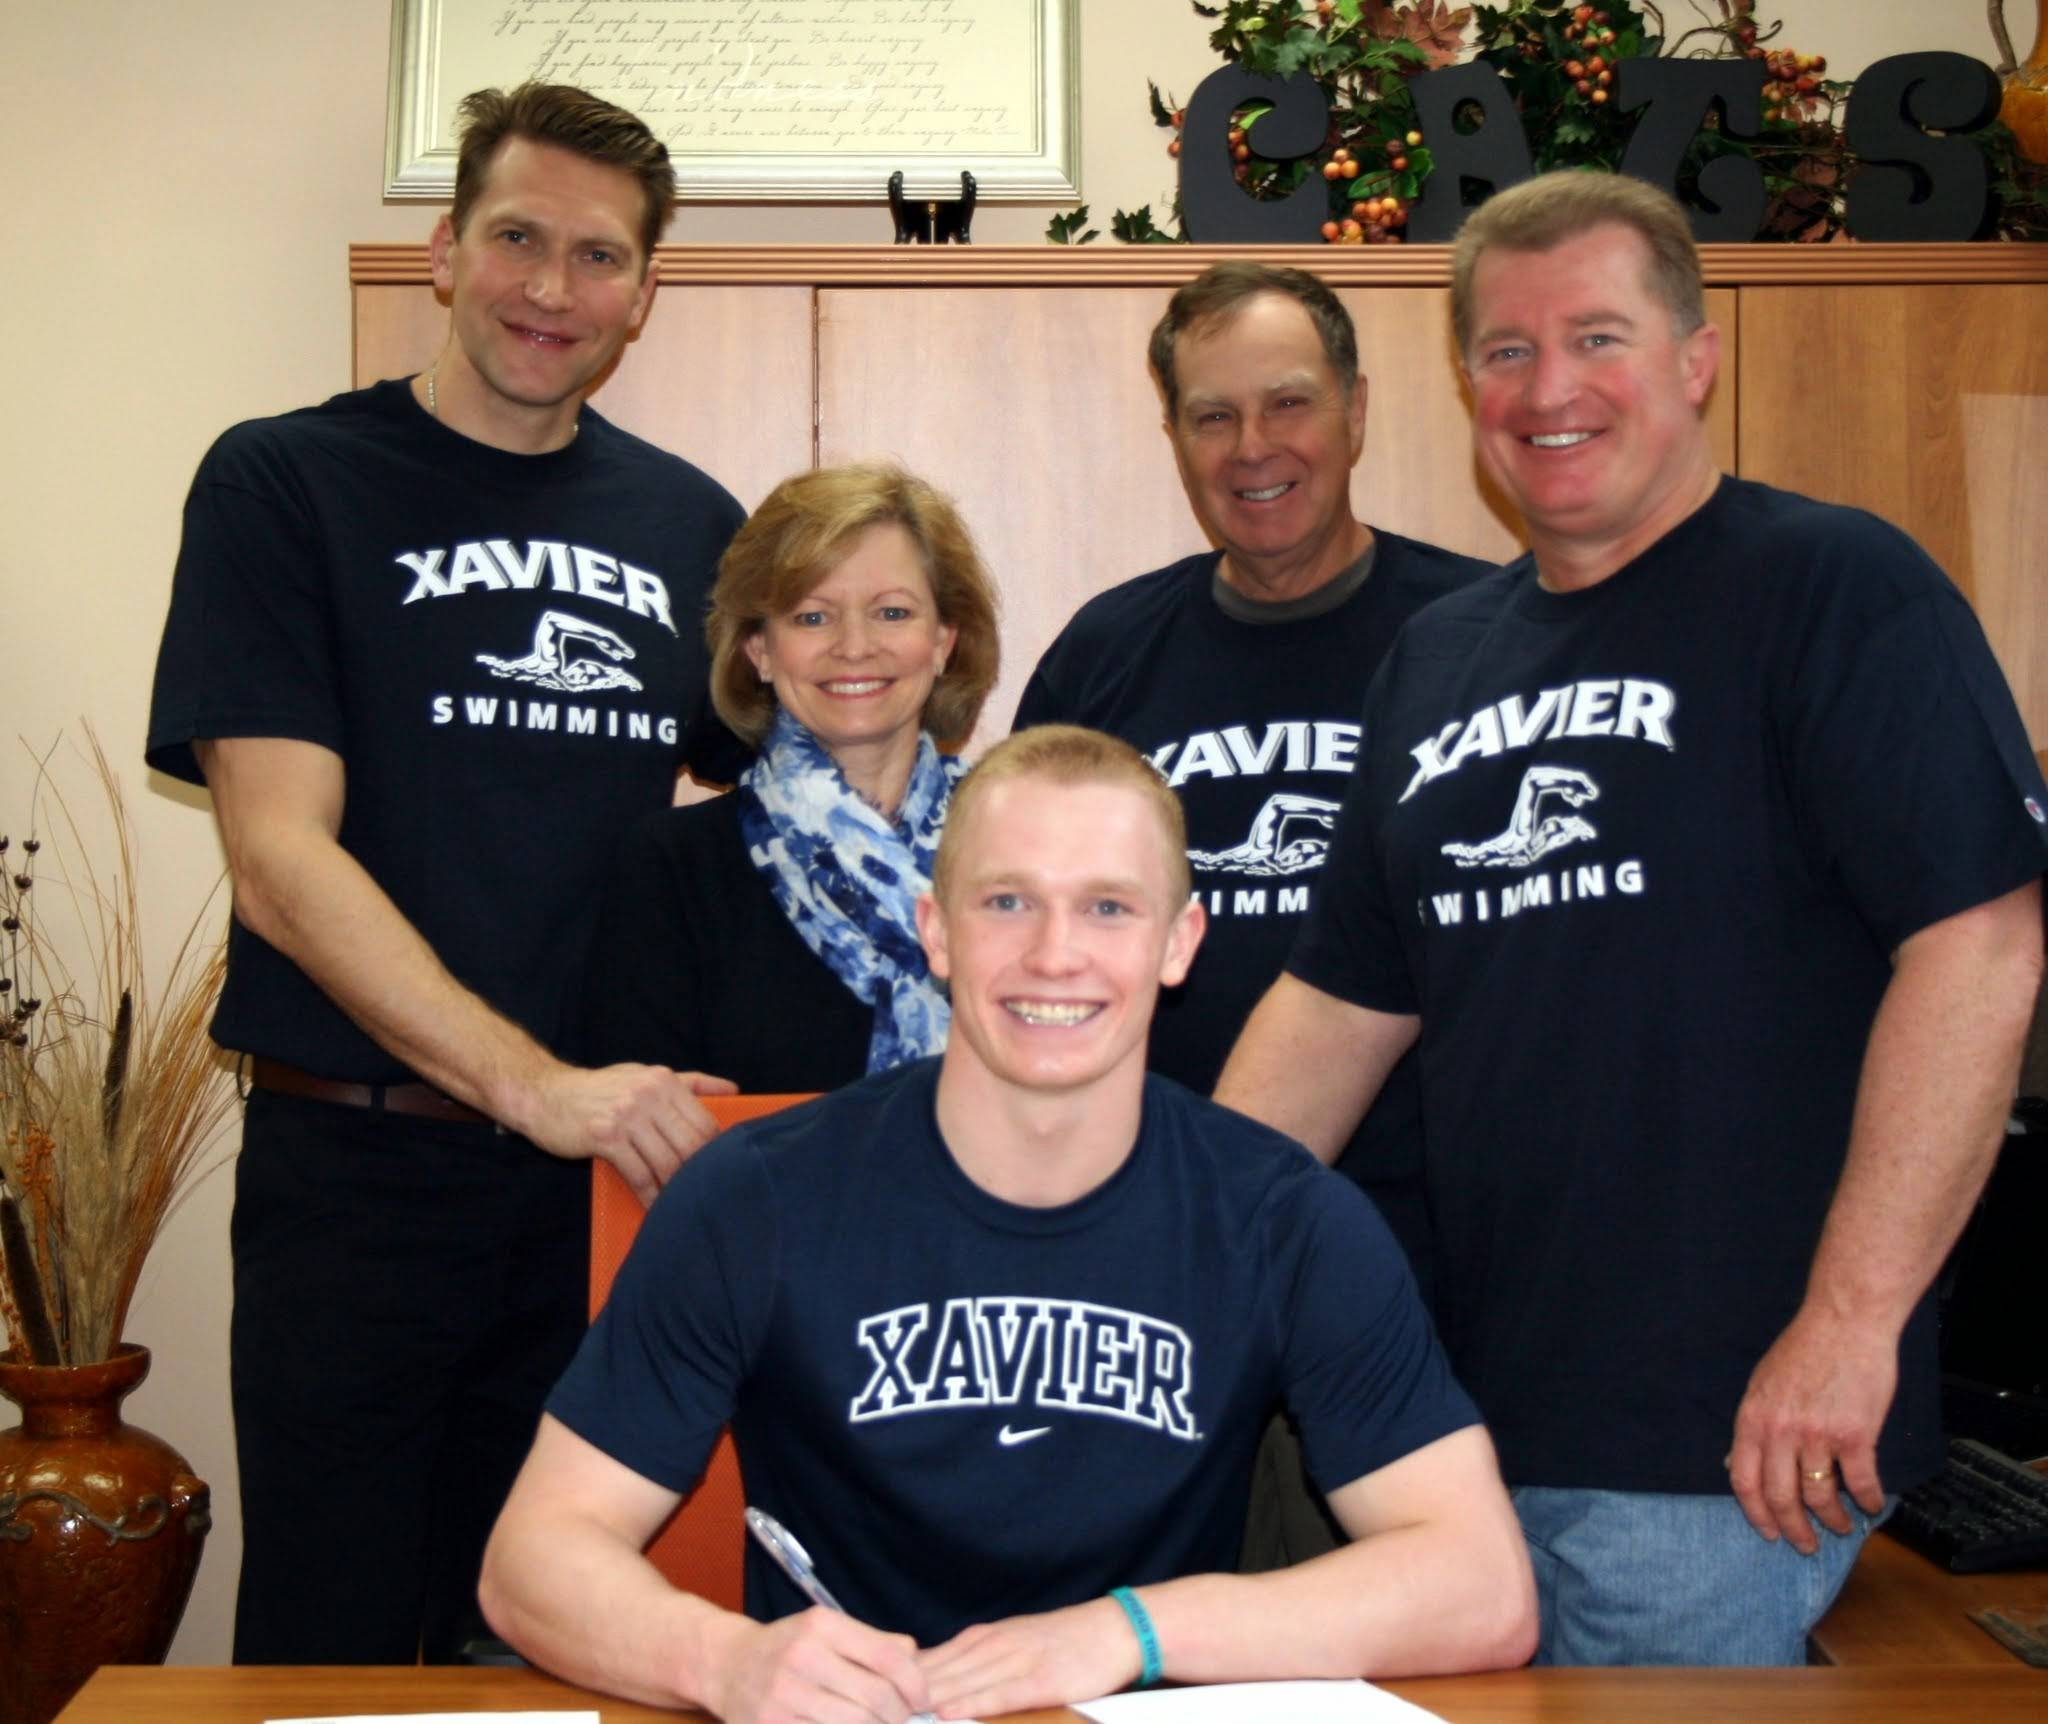 Bobby Snader, front, has committed to swim at Xavier University.